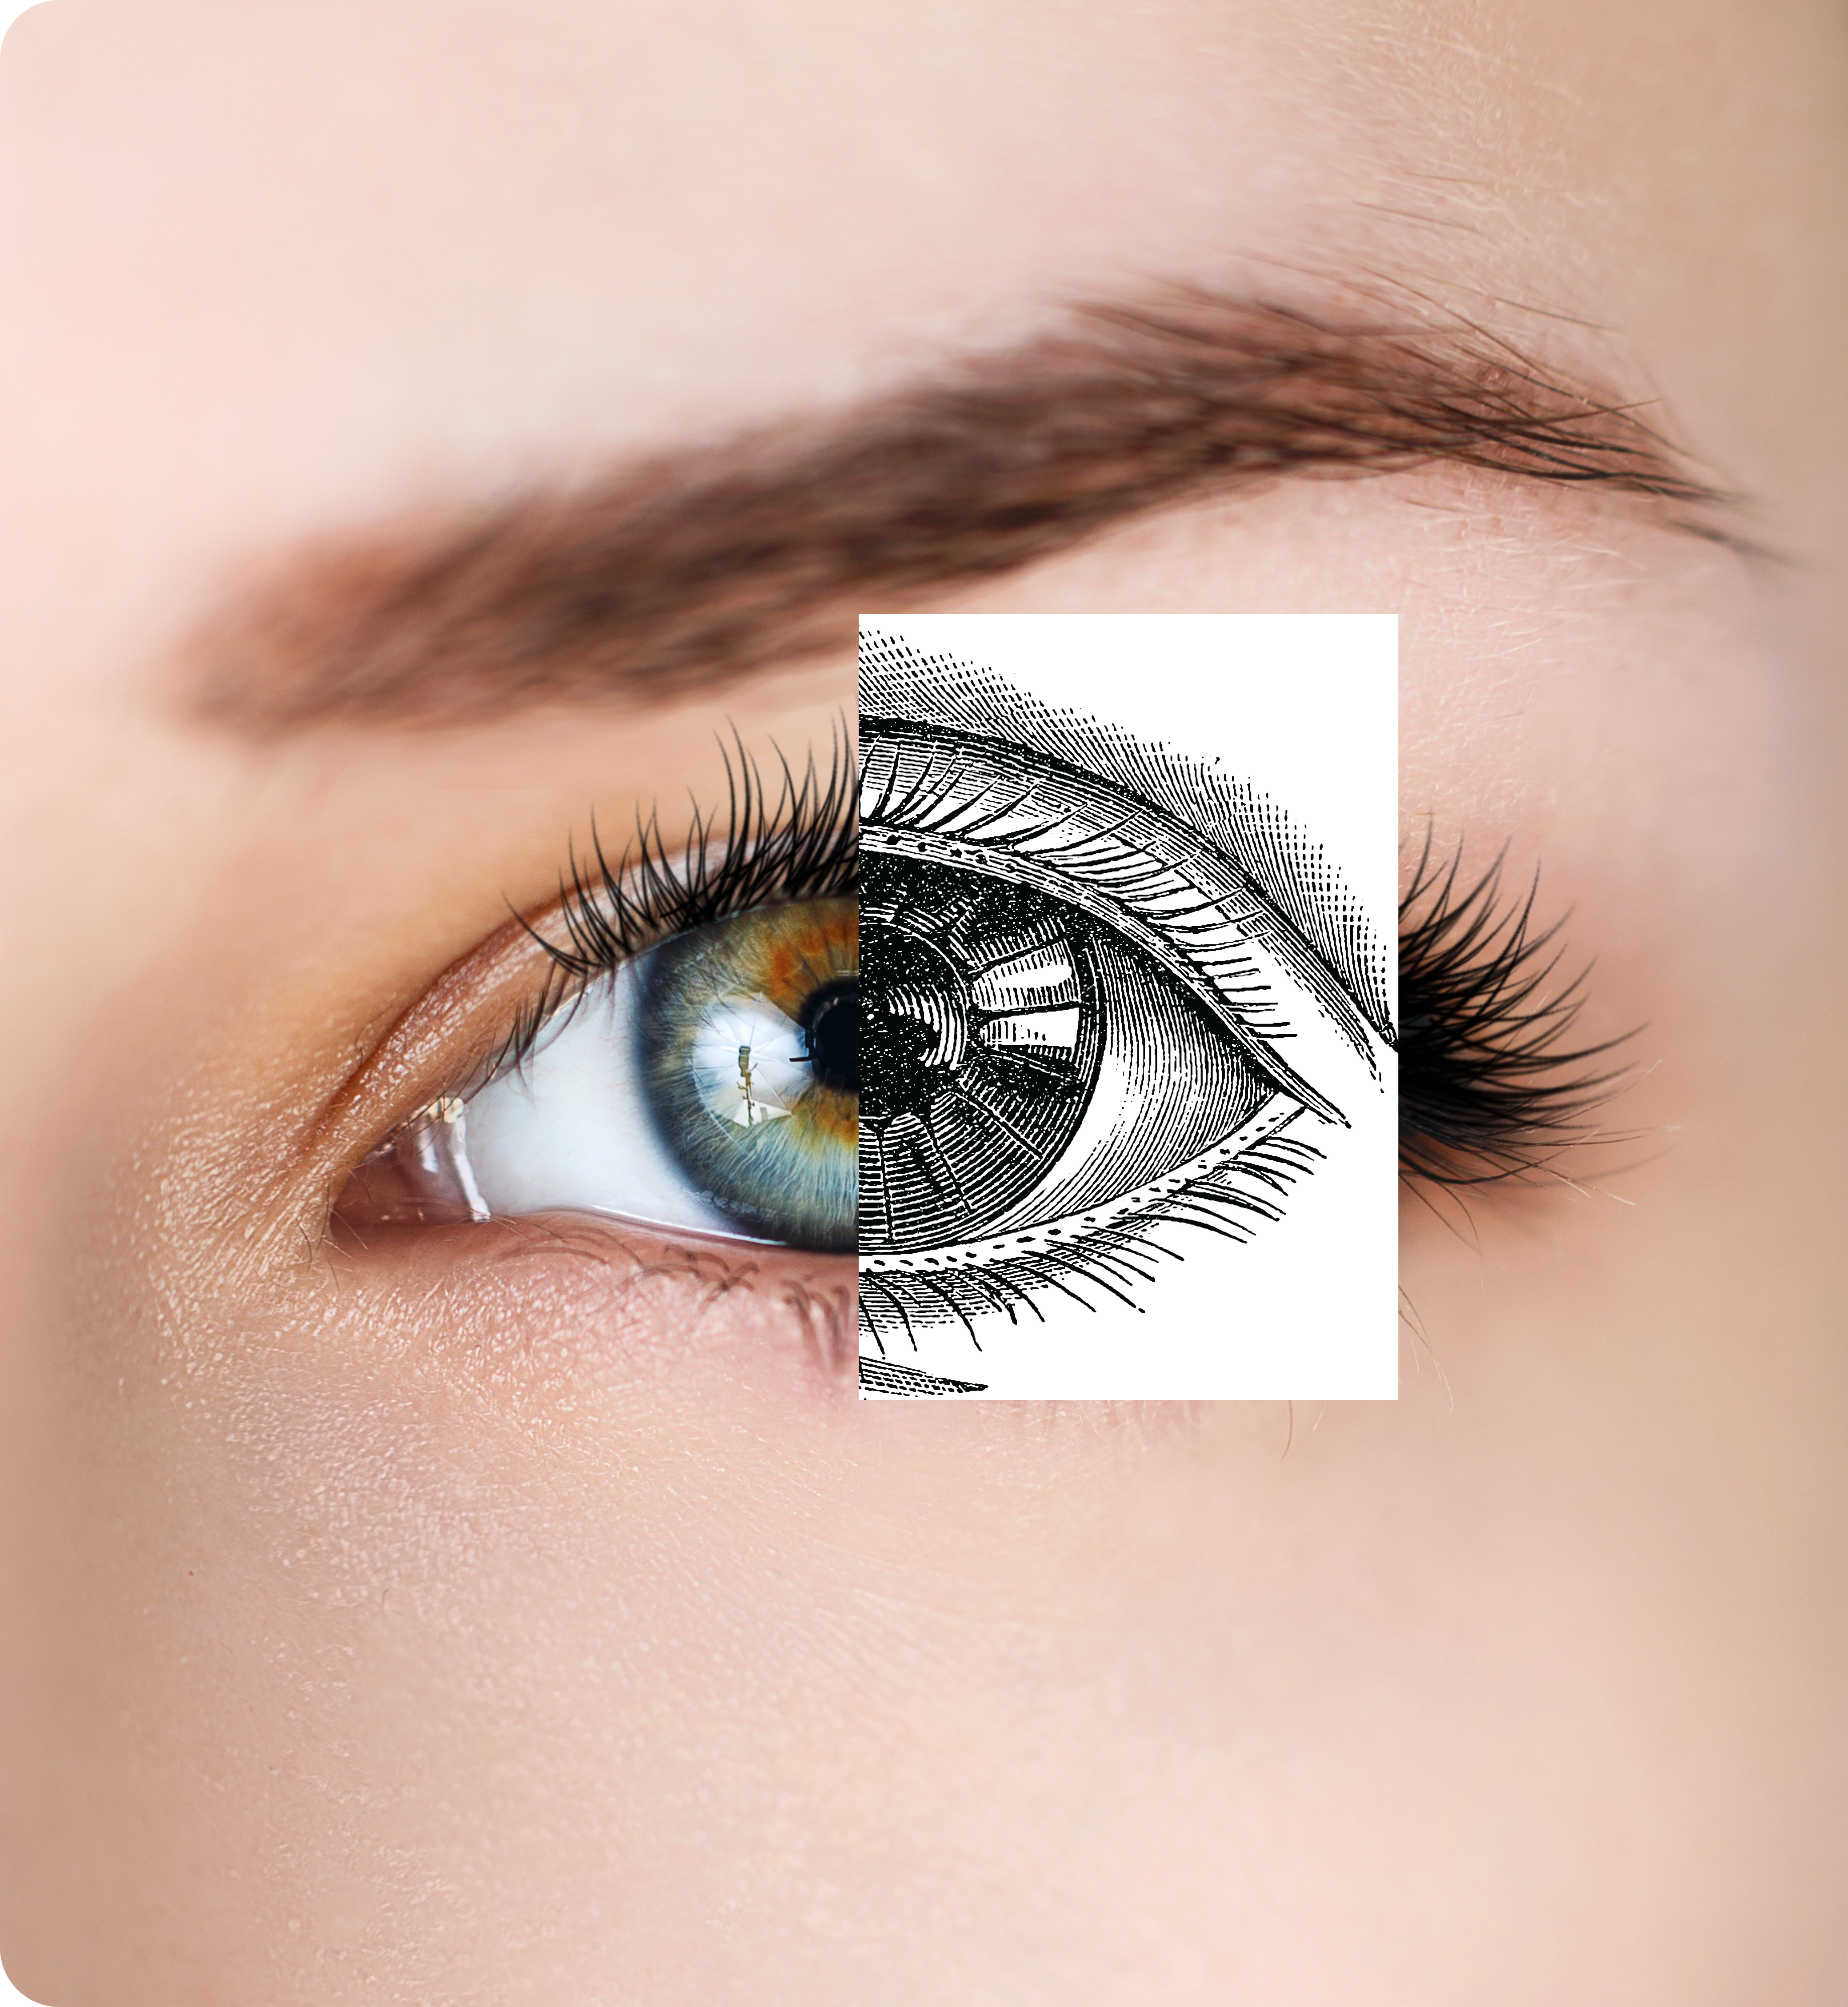 Half of an eye joined to a sketch of the eye mimicking its natural appearance.